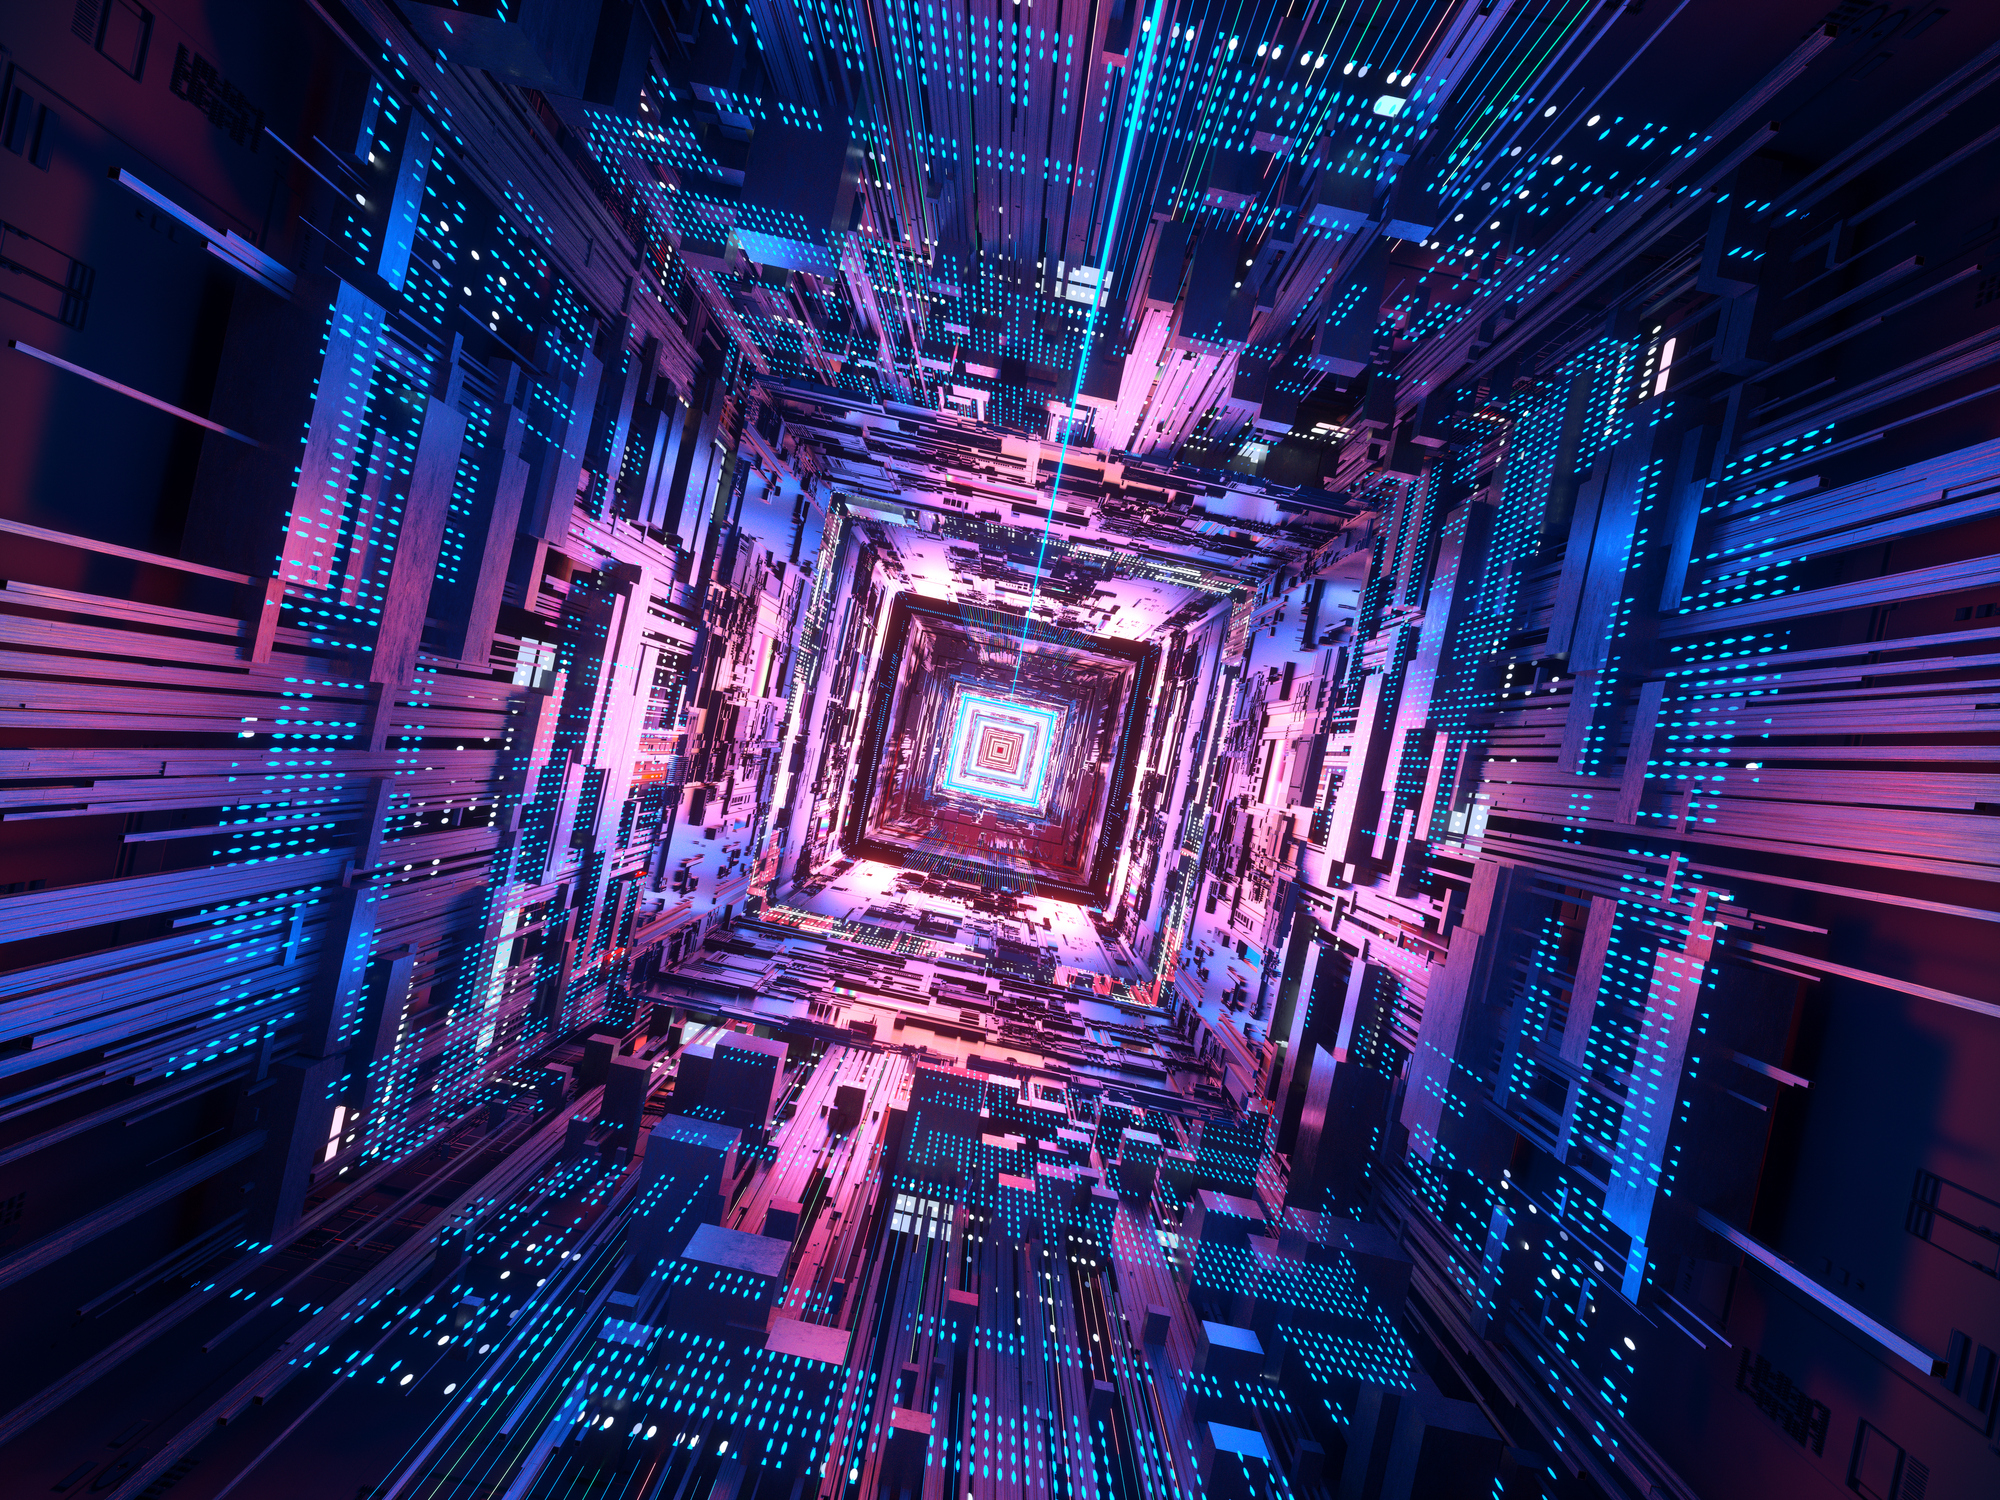 Data generated image of CPU in space.